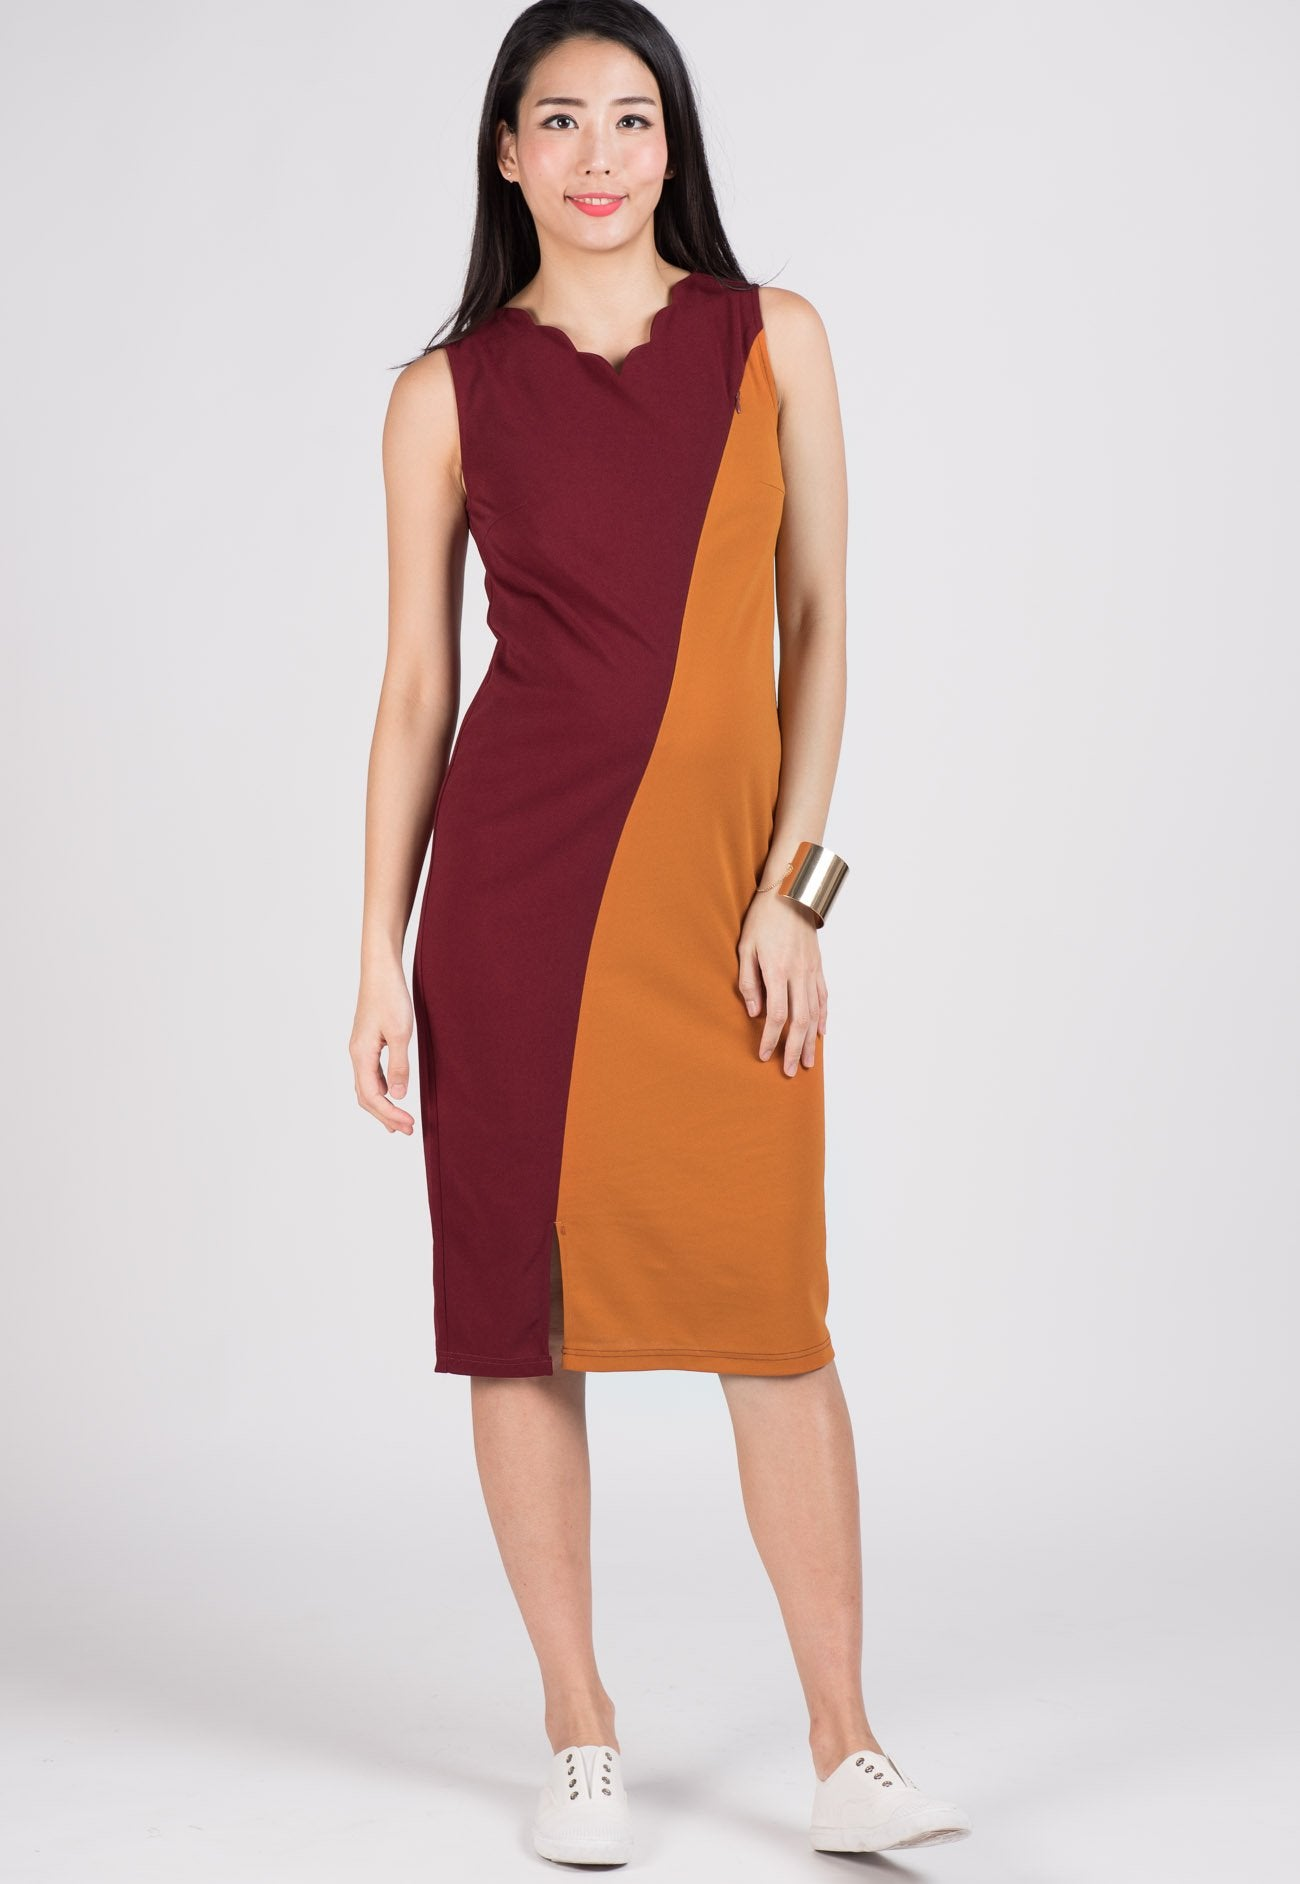 SALE Red Maddie Scallop Midi Nursing Dress  by Jump Eat Cry - Maternity and nursing wear